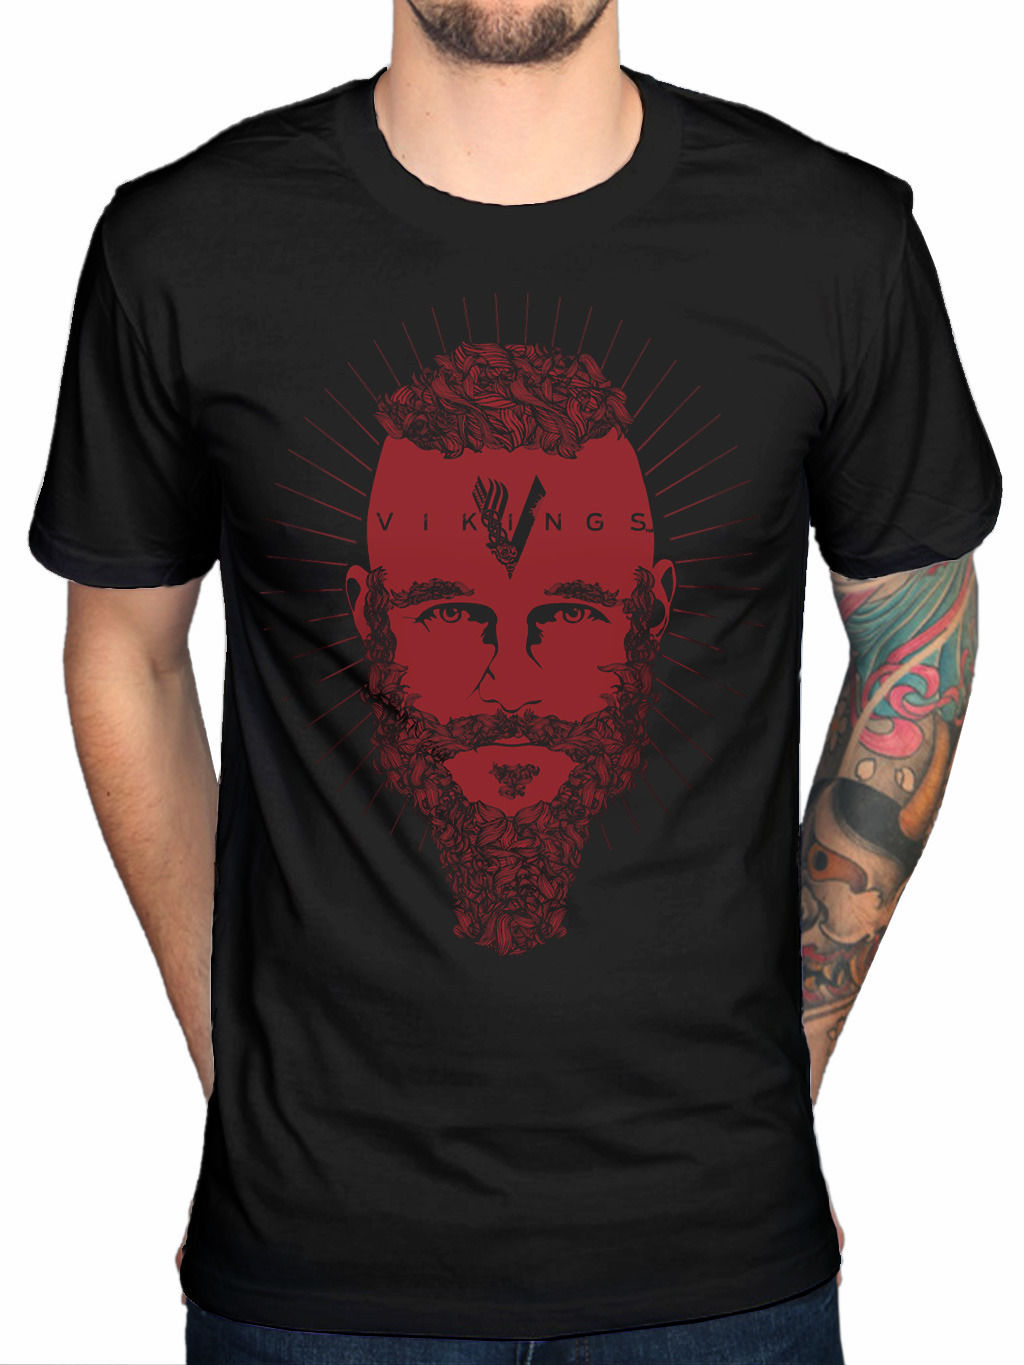 Vikings Ragnar Face T-Shirt TV Series History Channel Fan Merchandise